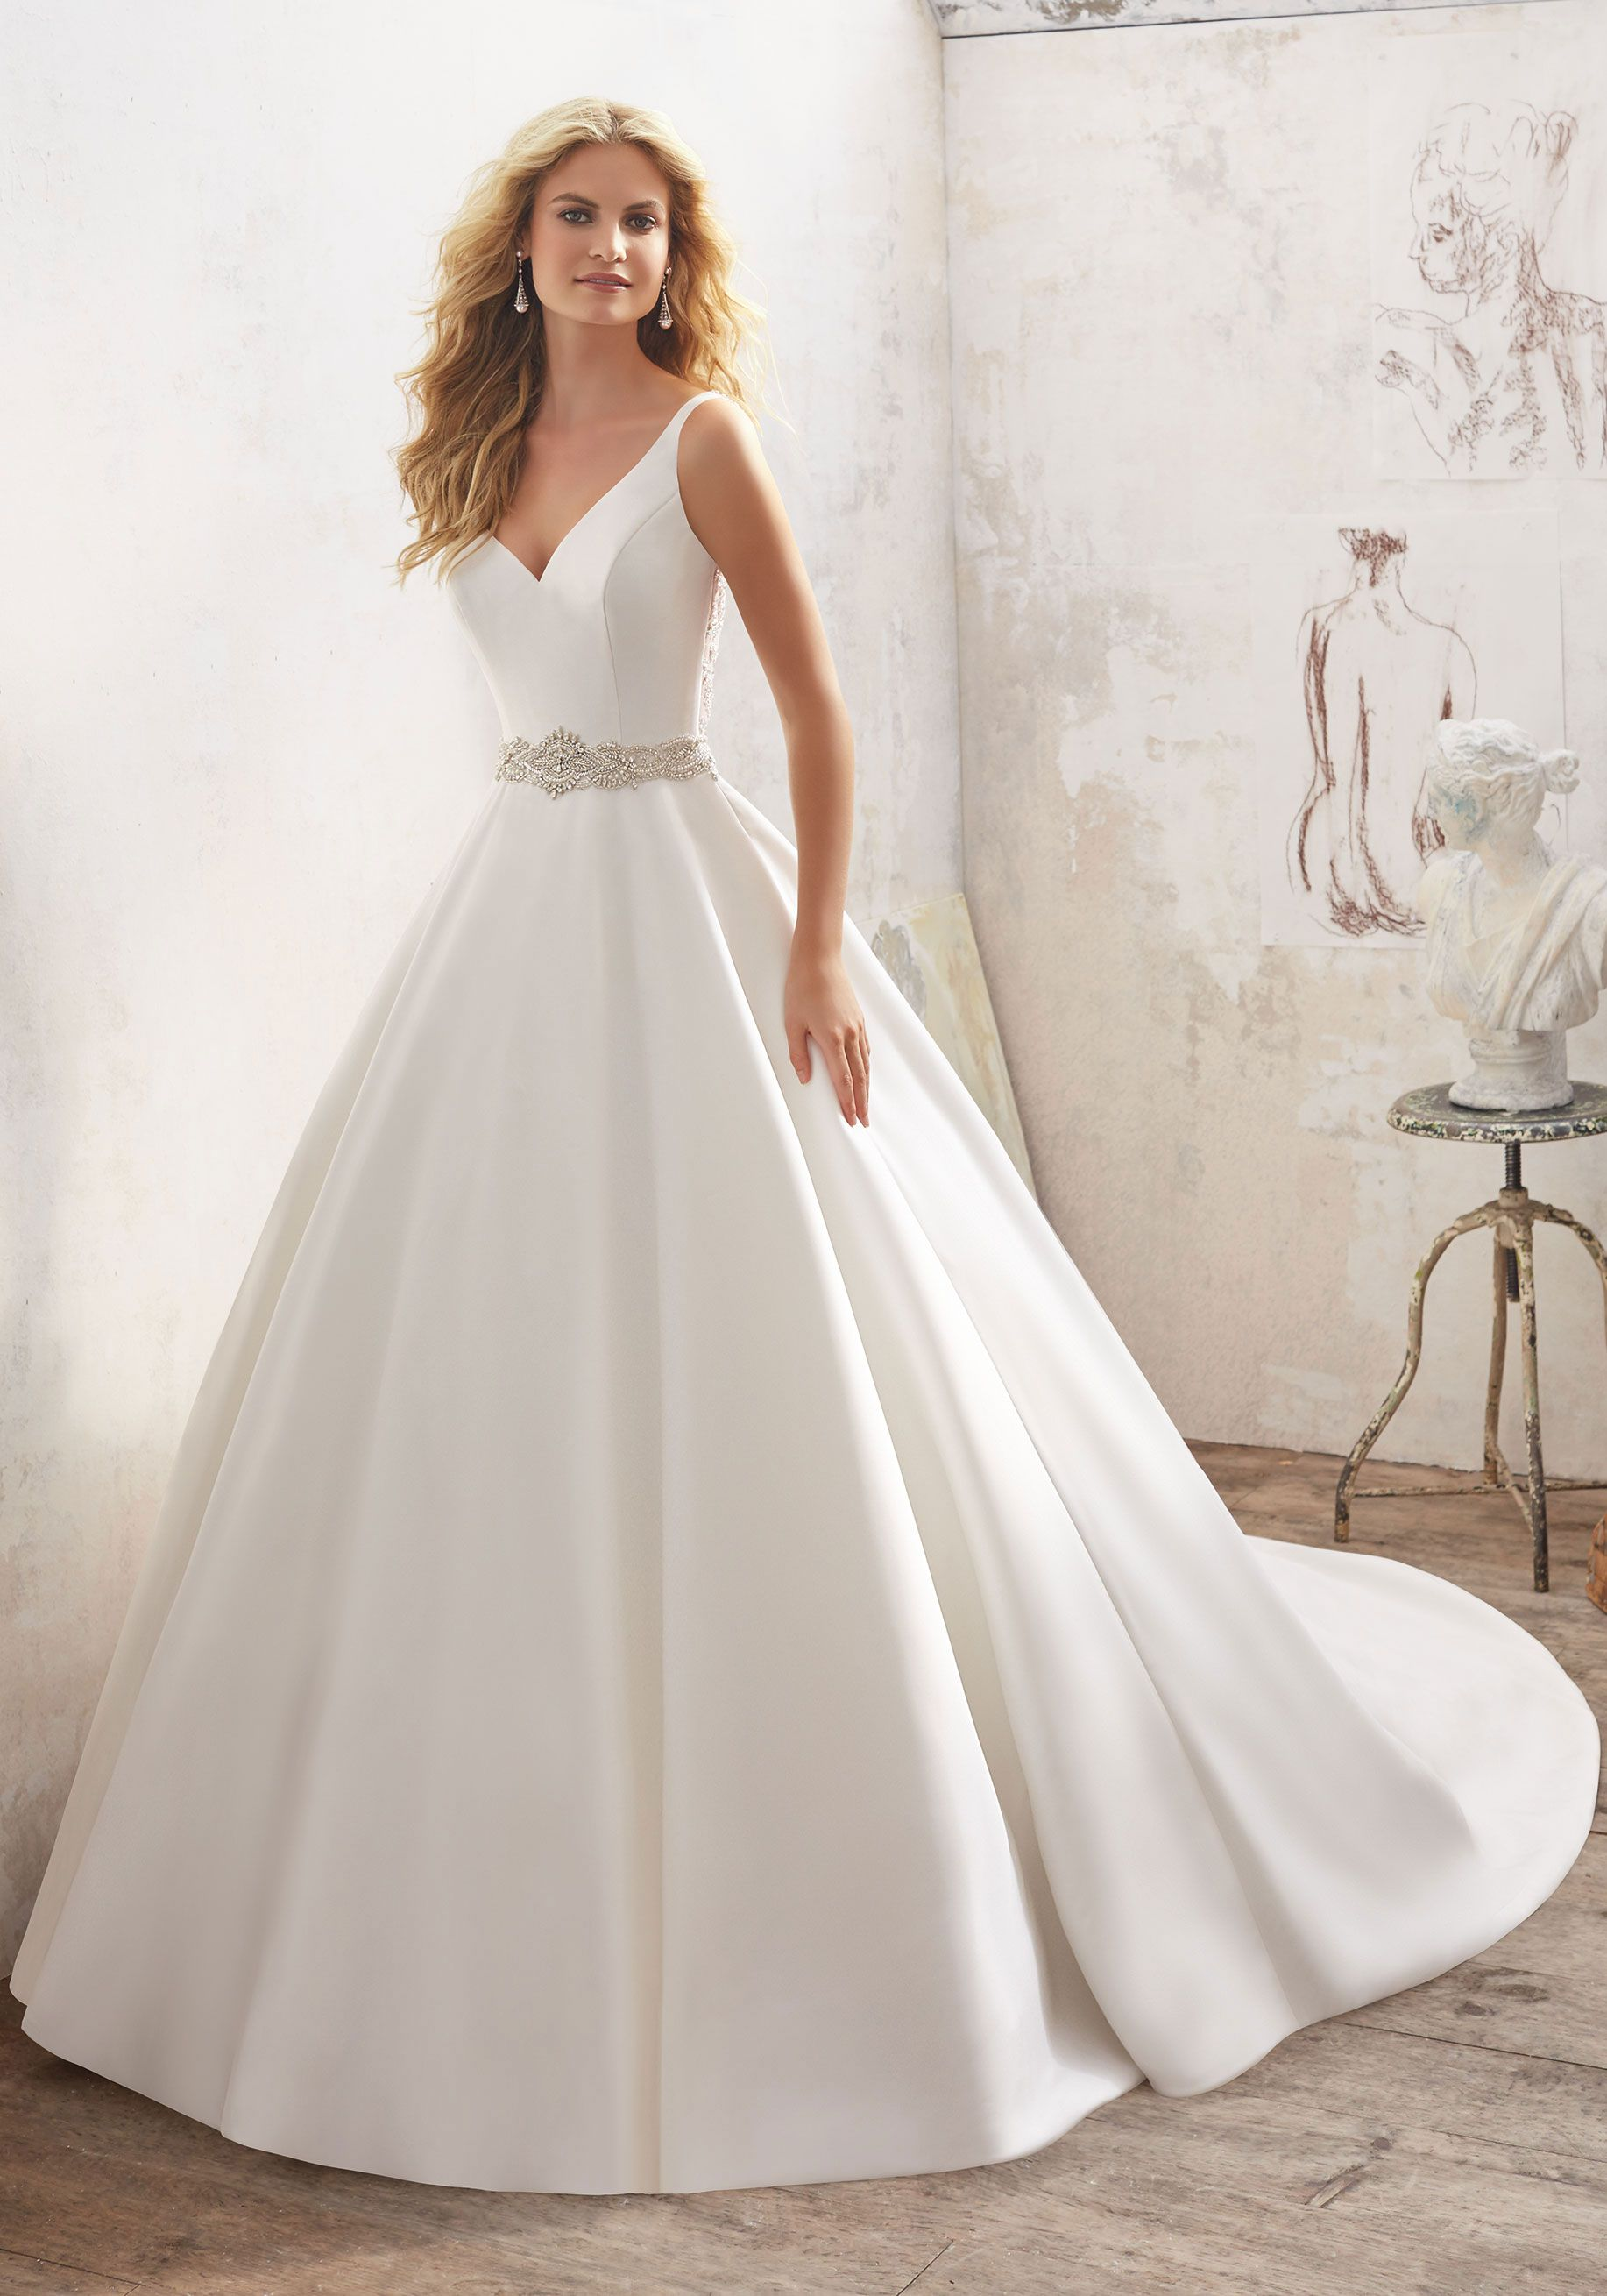 Maribella Wedding Dress | Morilee Spring \'17 | Madeline Gardner ...